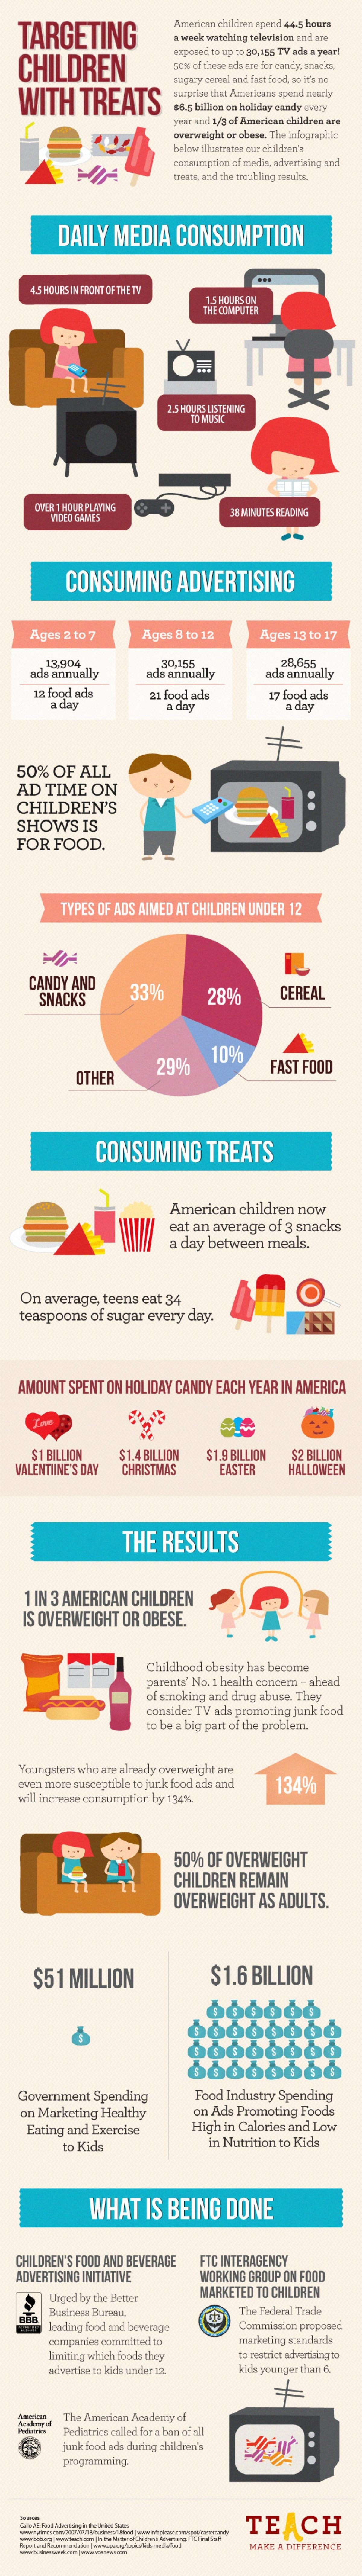 Targeting children with treats